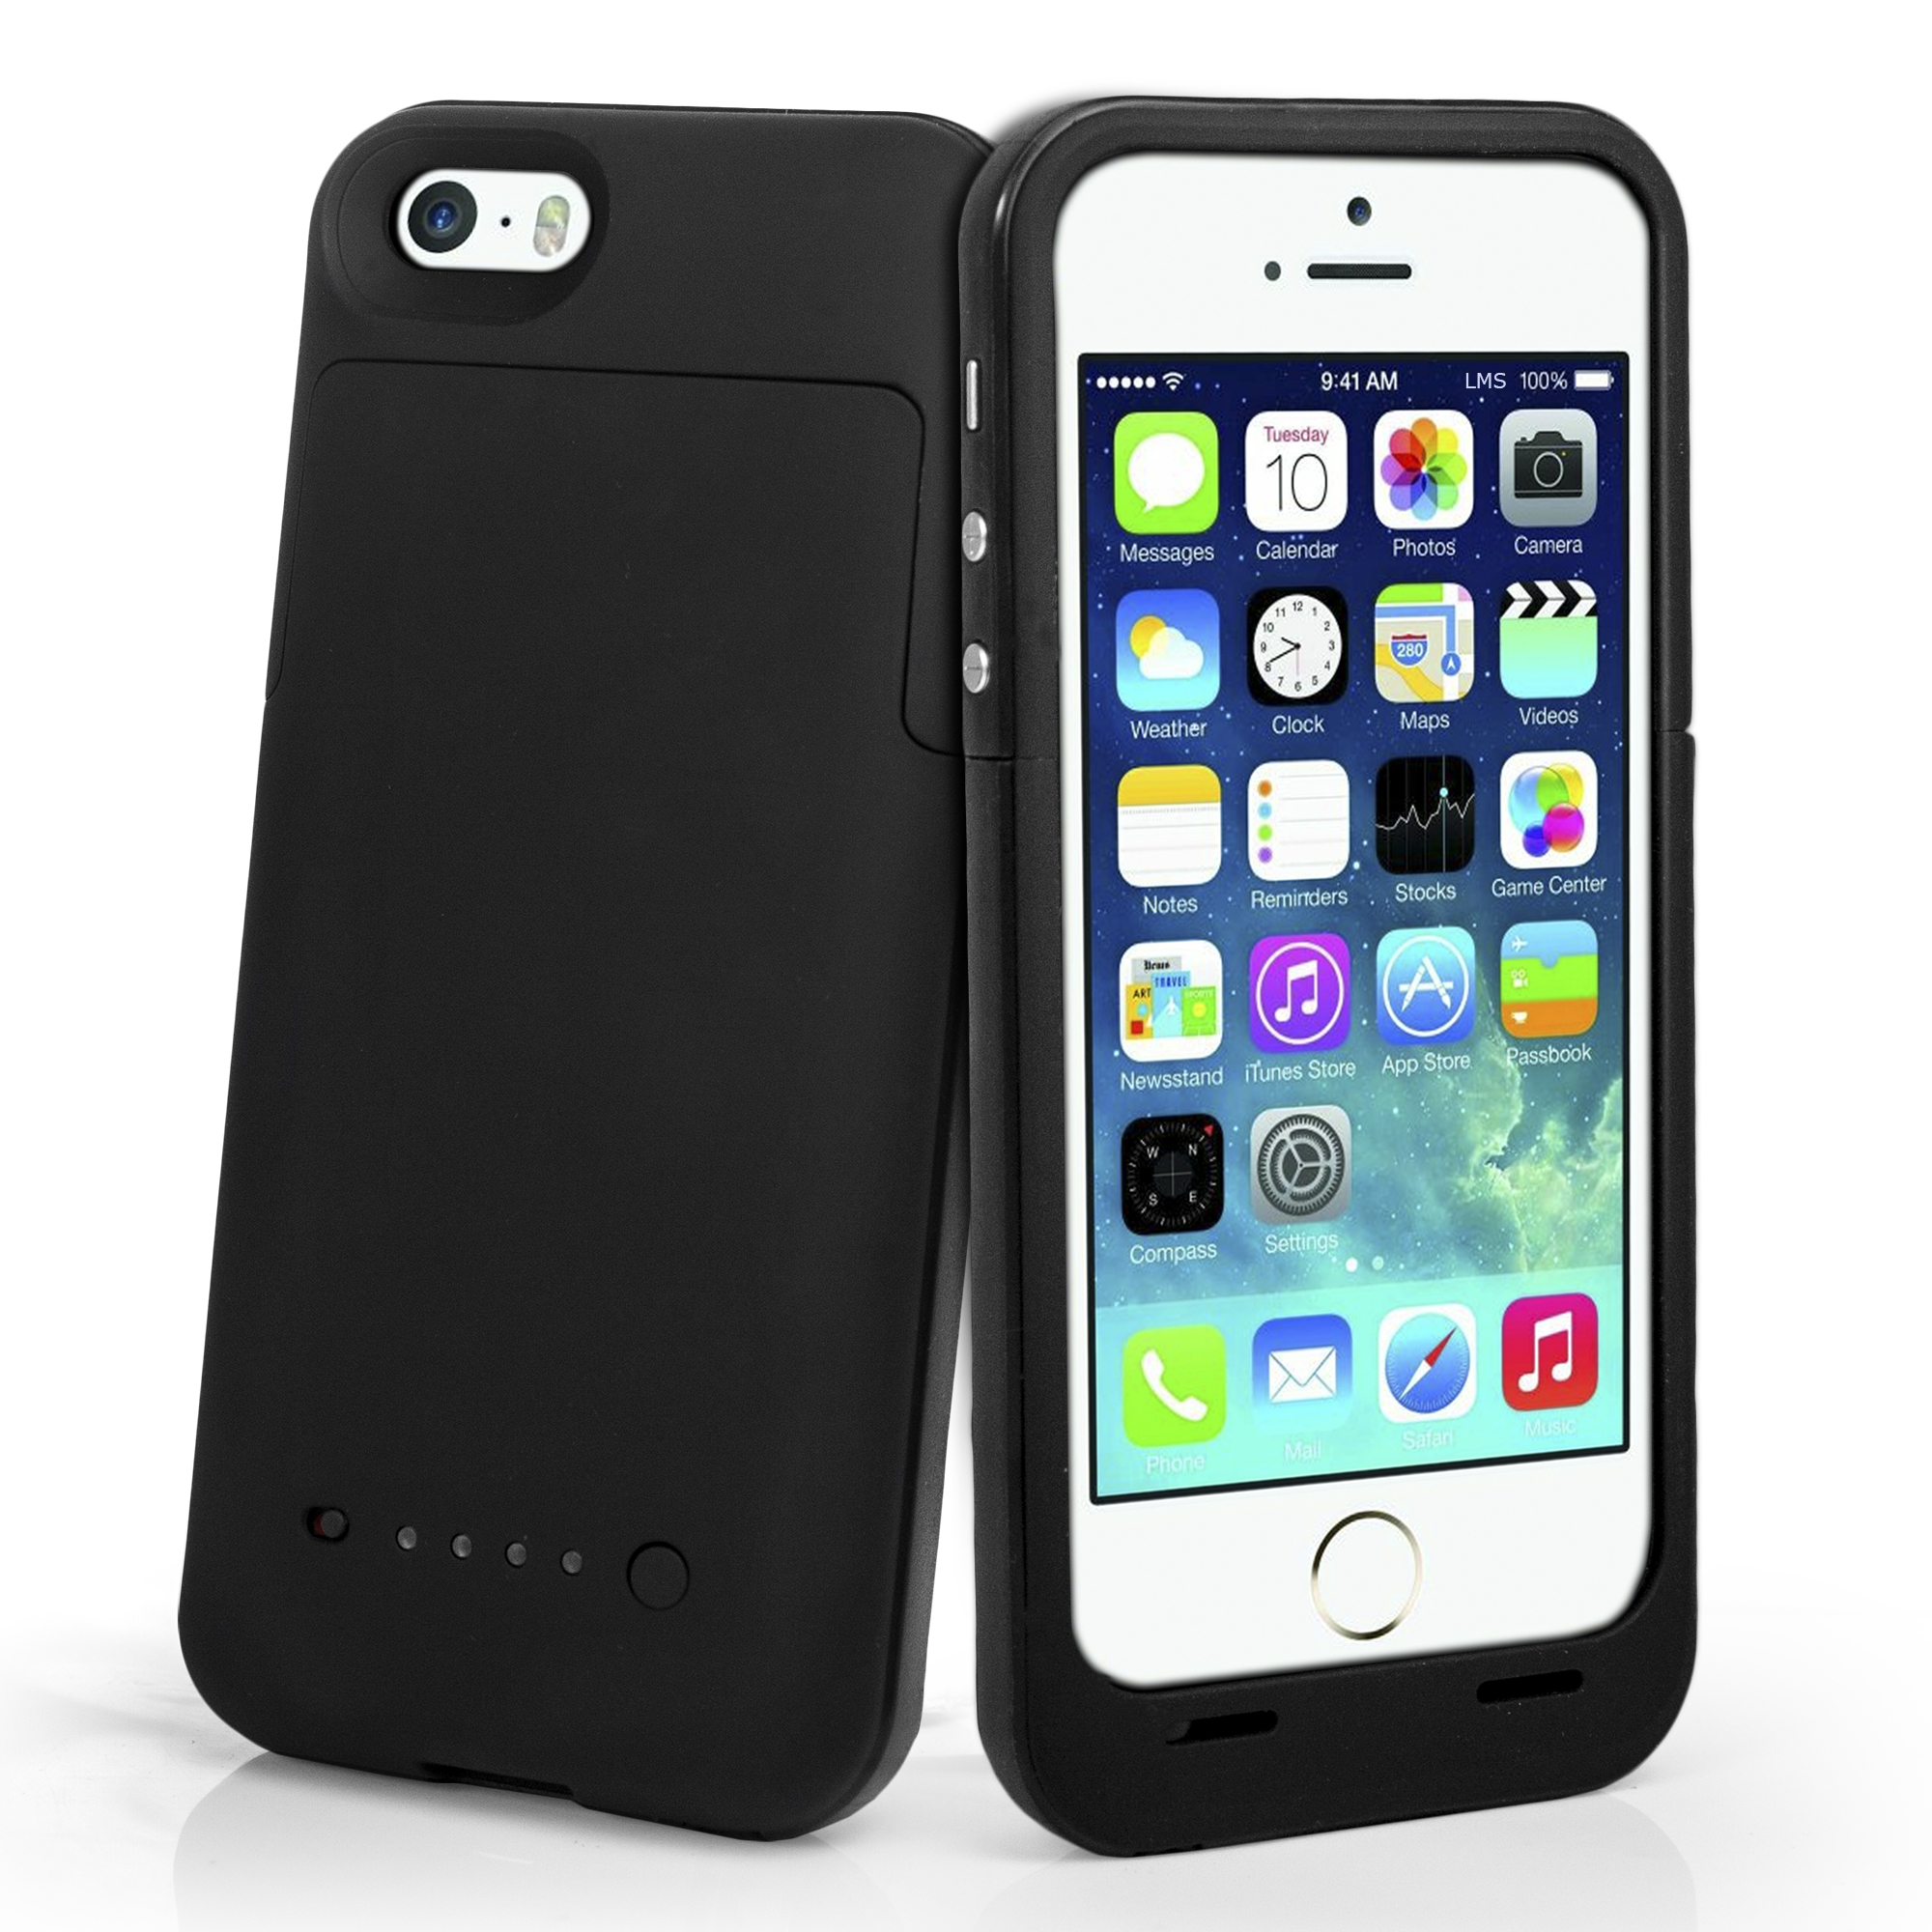 Mophie Juice Pack Air 1700 mah Battery Case for iPhone 5 - Black